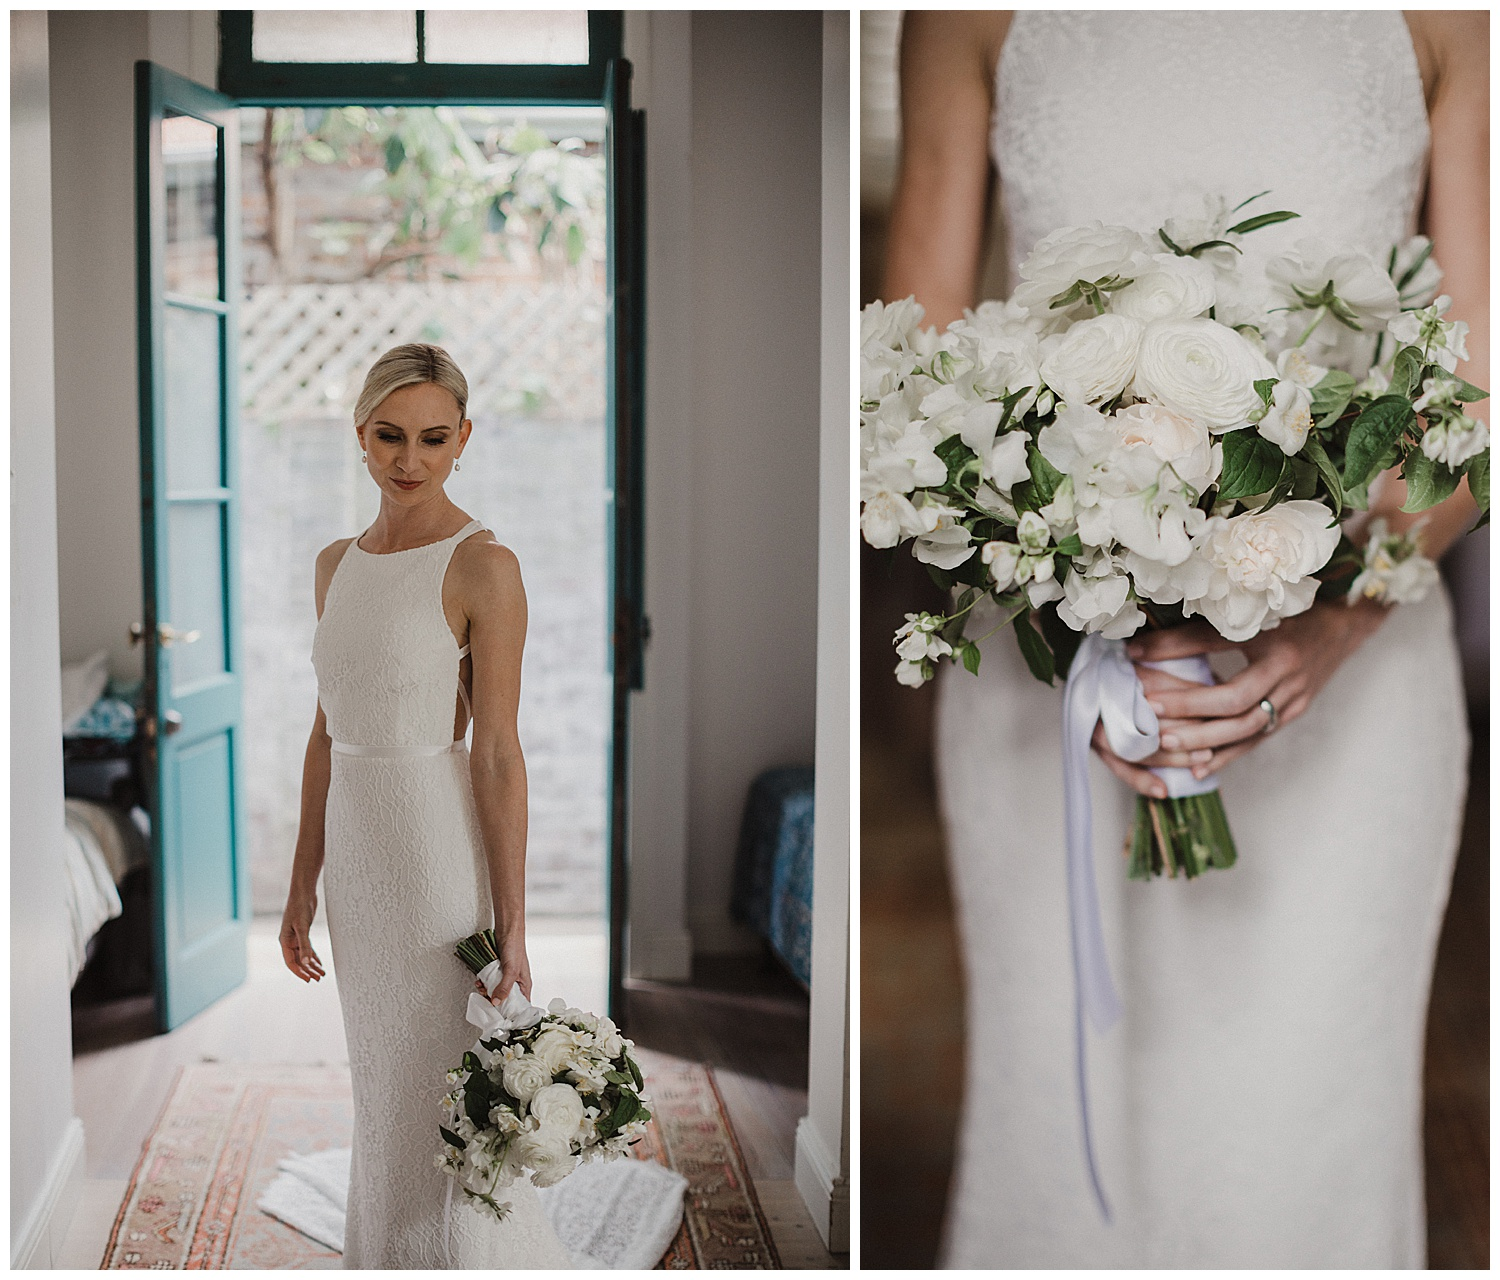 Sydney Bride wearing Karen Willis Holmes dress and flowers by Poho